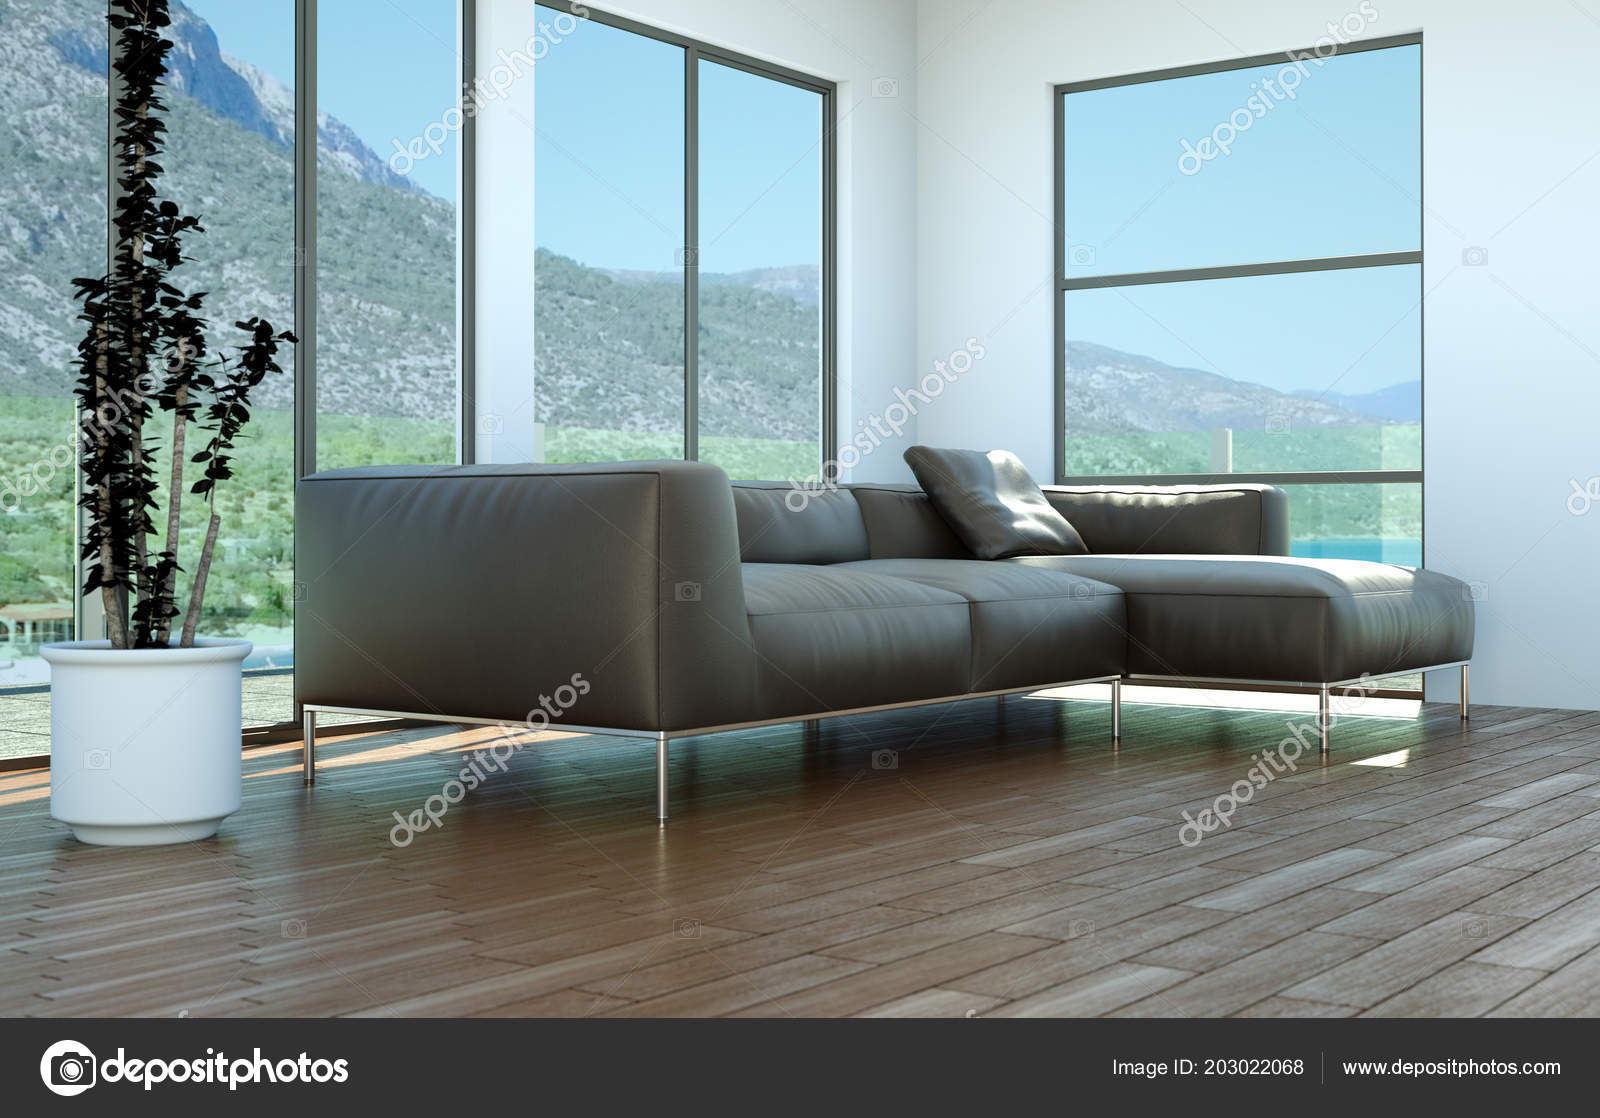 Bright Room With Leather Sofa In Front Of A Window Stock Photo